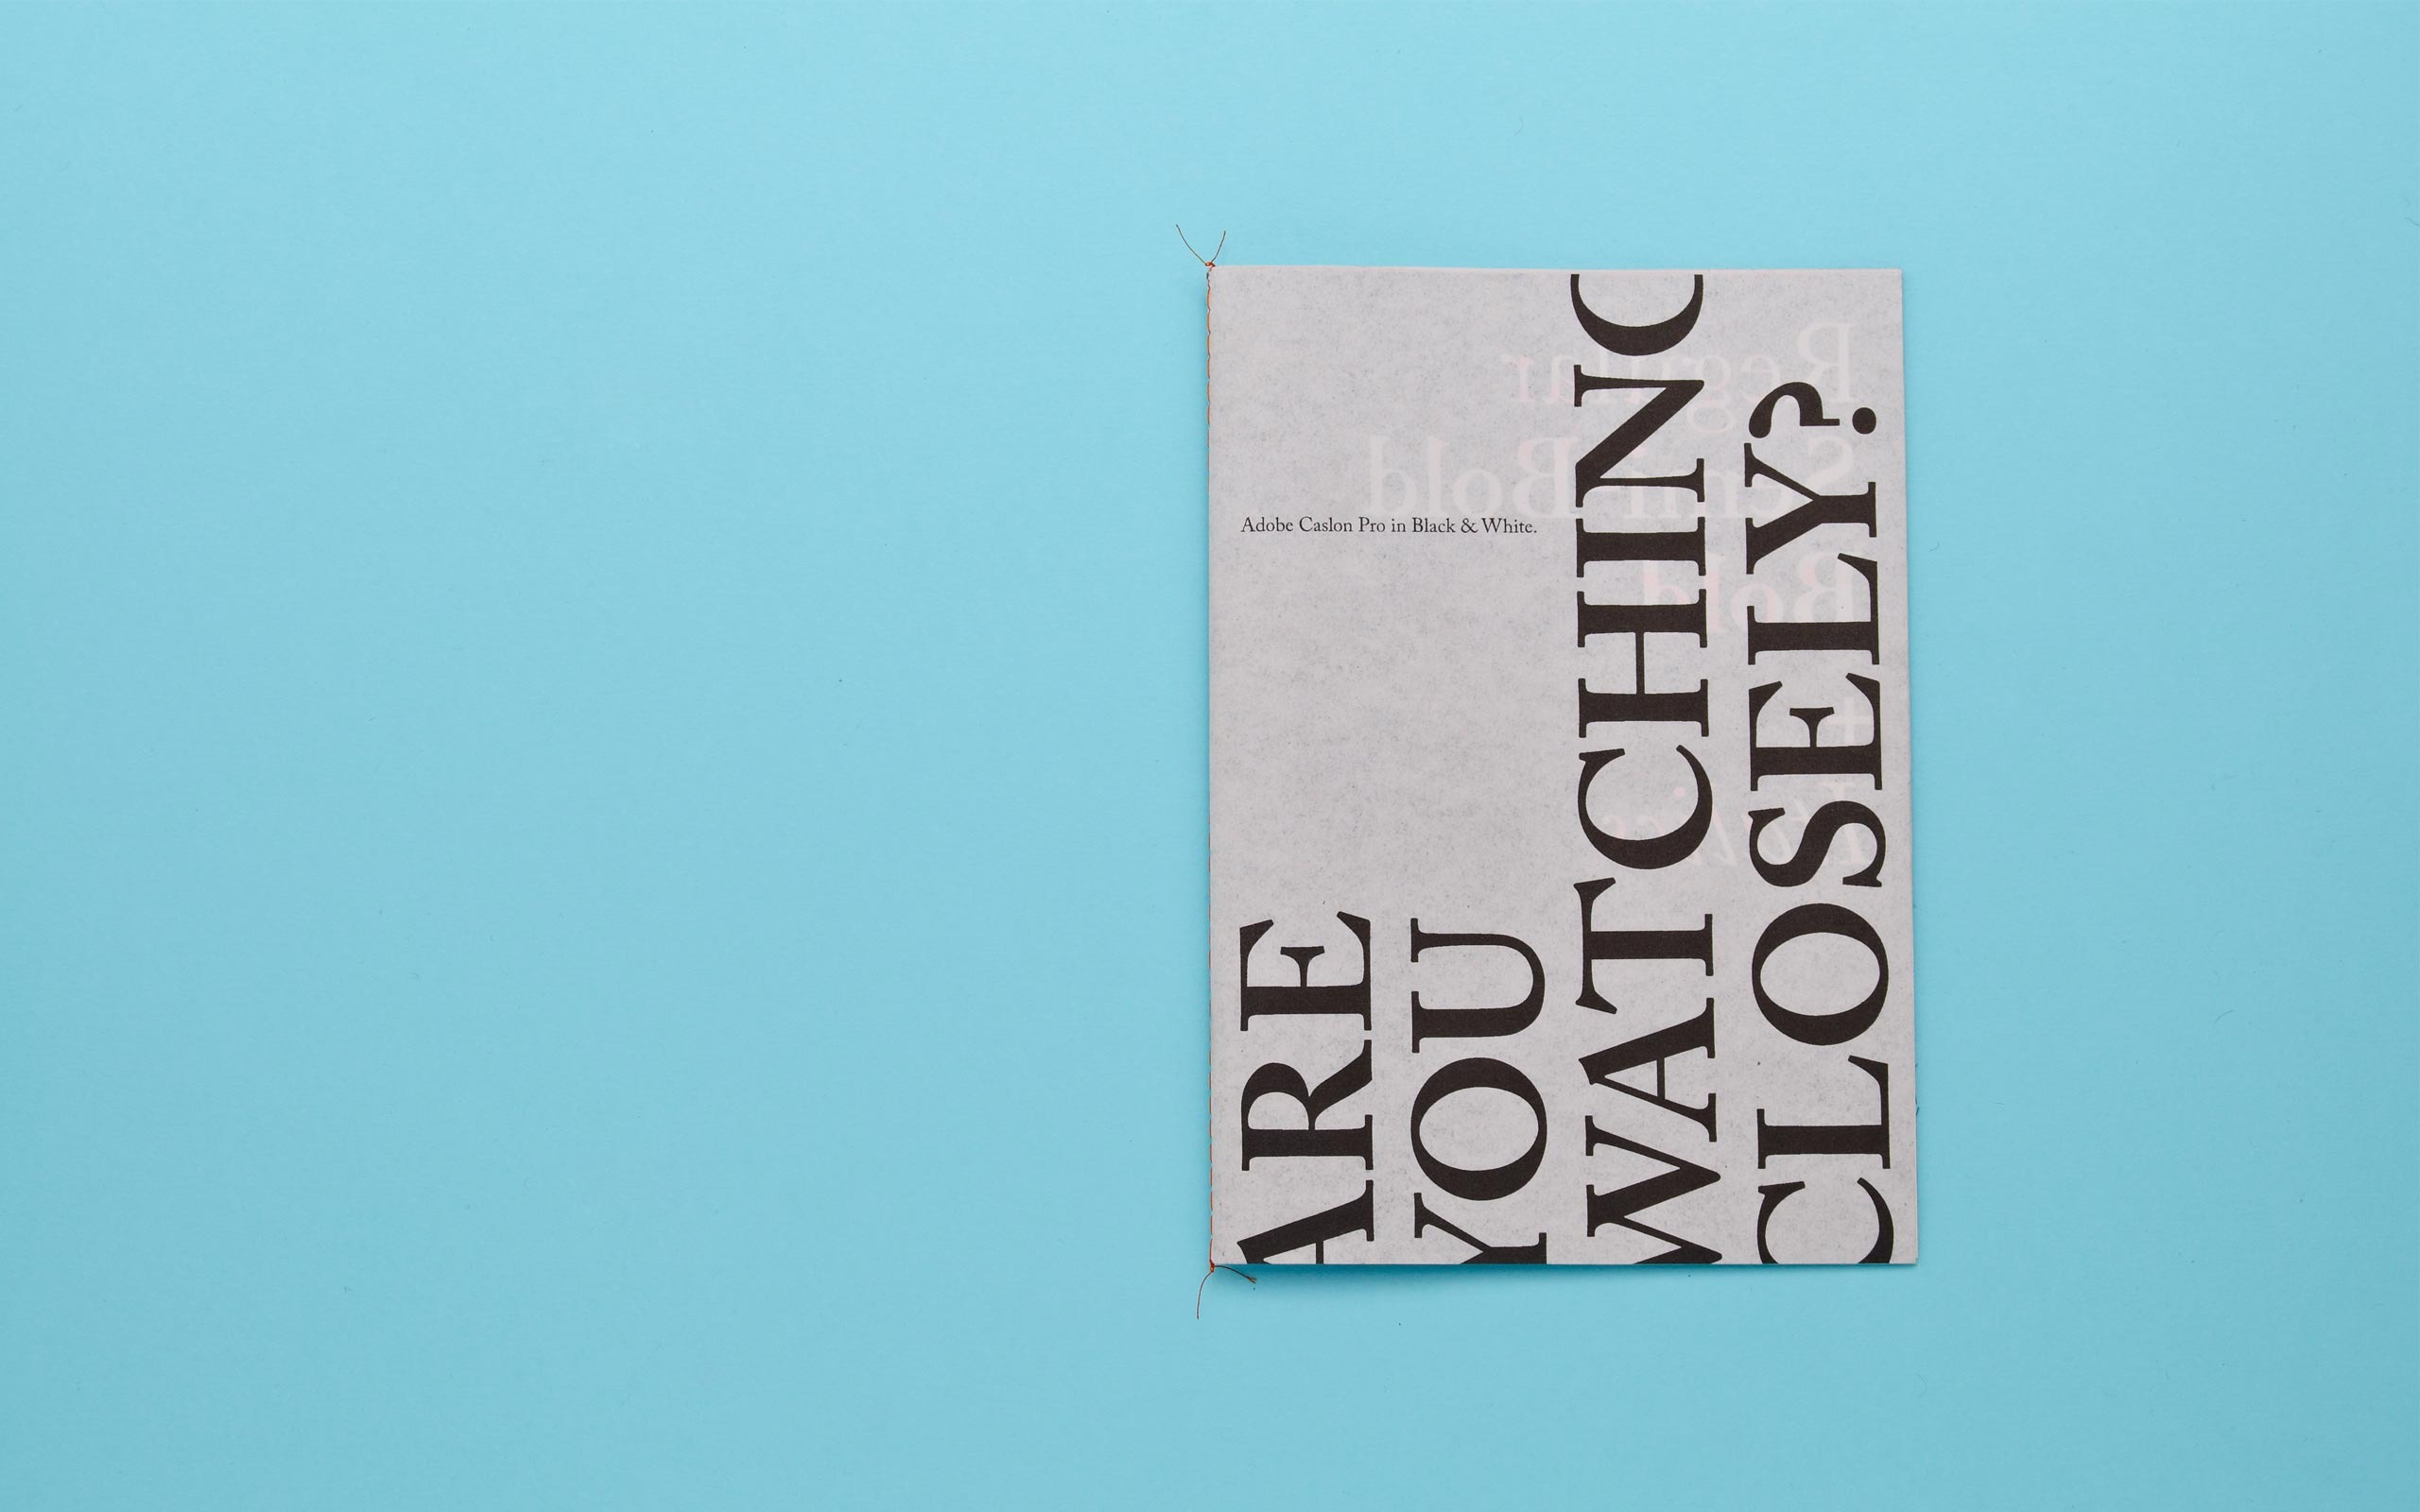 Adobe Caslon | Two Times Elliott. Creative Agency, Notting Hill. +44 (0) 203 214 3133